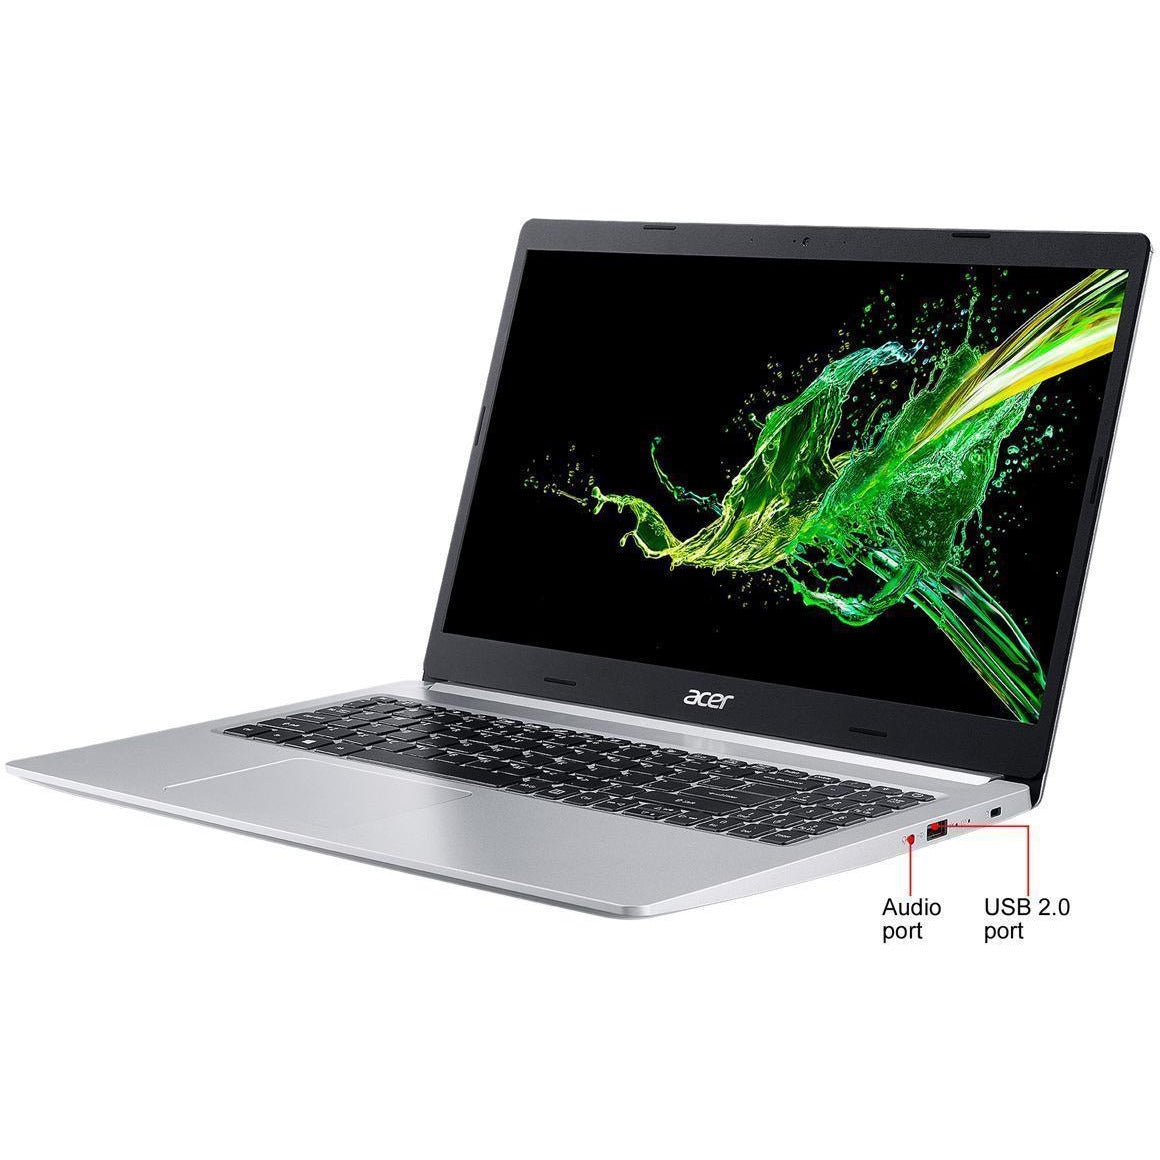 NB ACER A515-55-576H NX.HSMAA.003 R - Gaming Laptop